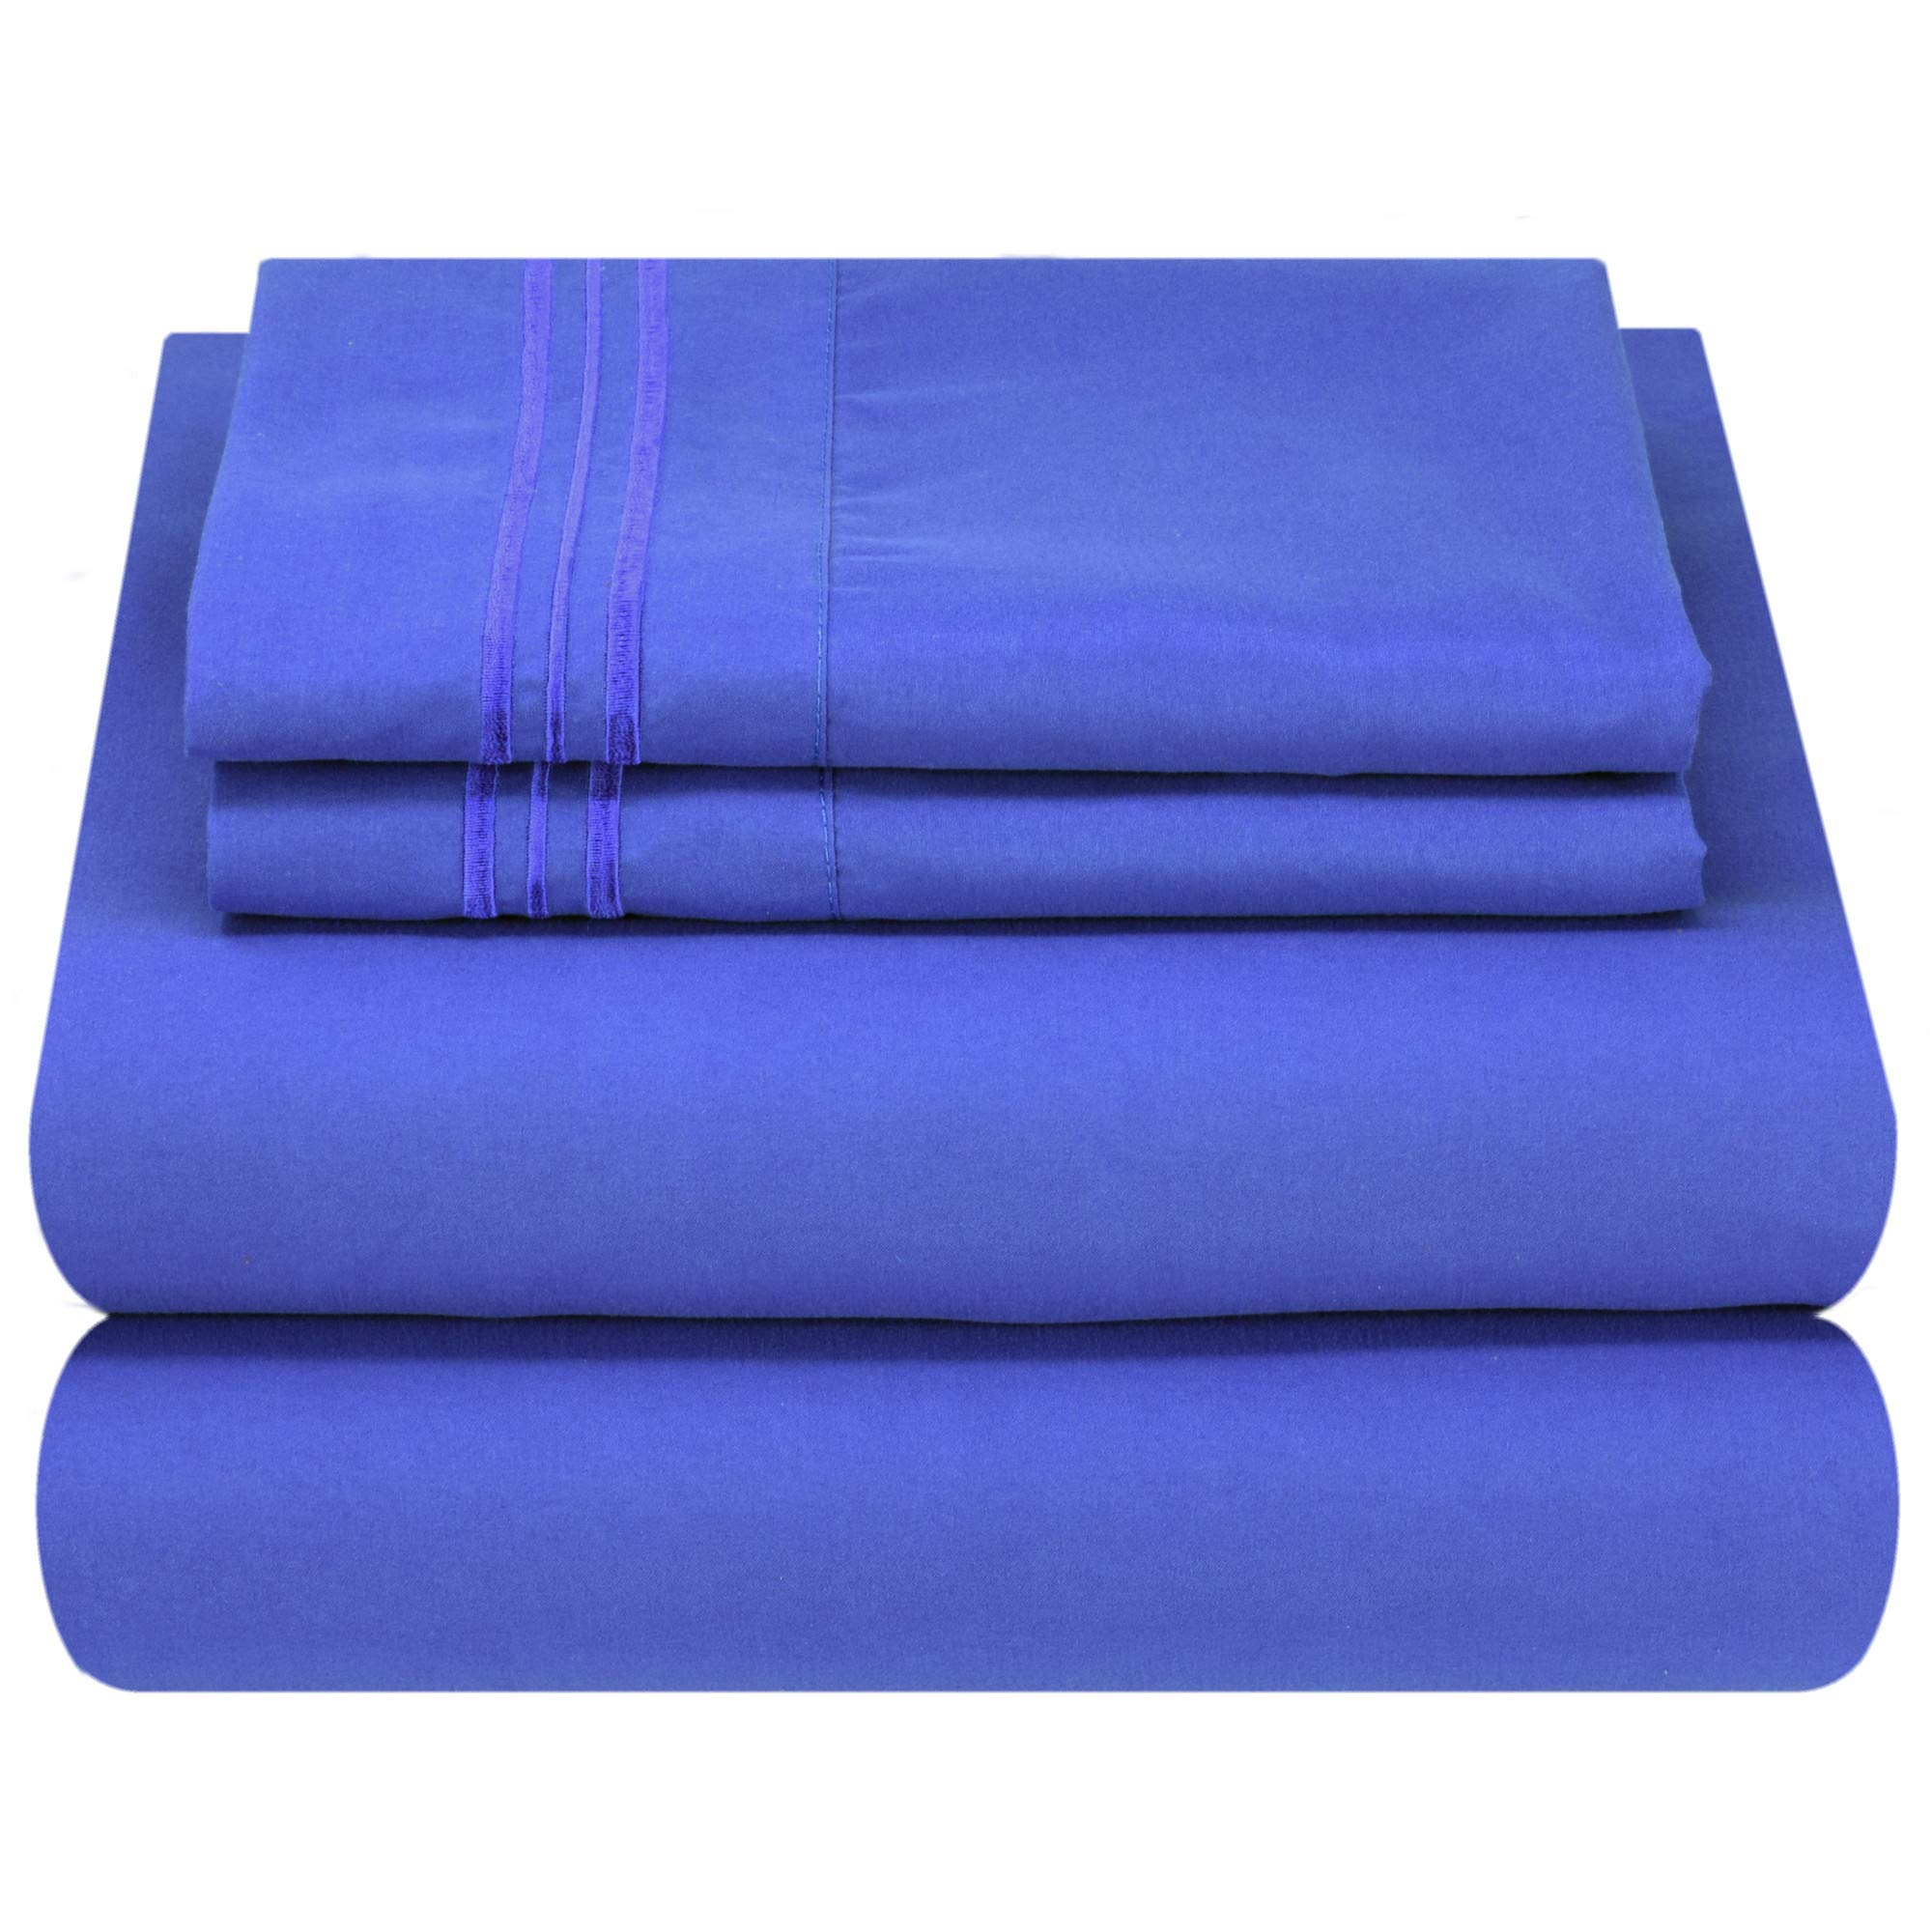 Mezzati Luxury Bed Sheet Set - Soft and Comfortable 1800 Prestige Collection - Brushed Microfiber Bedding (Royal Blue, King Size)